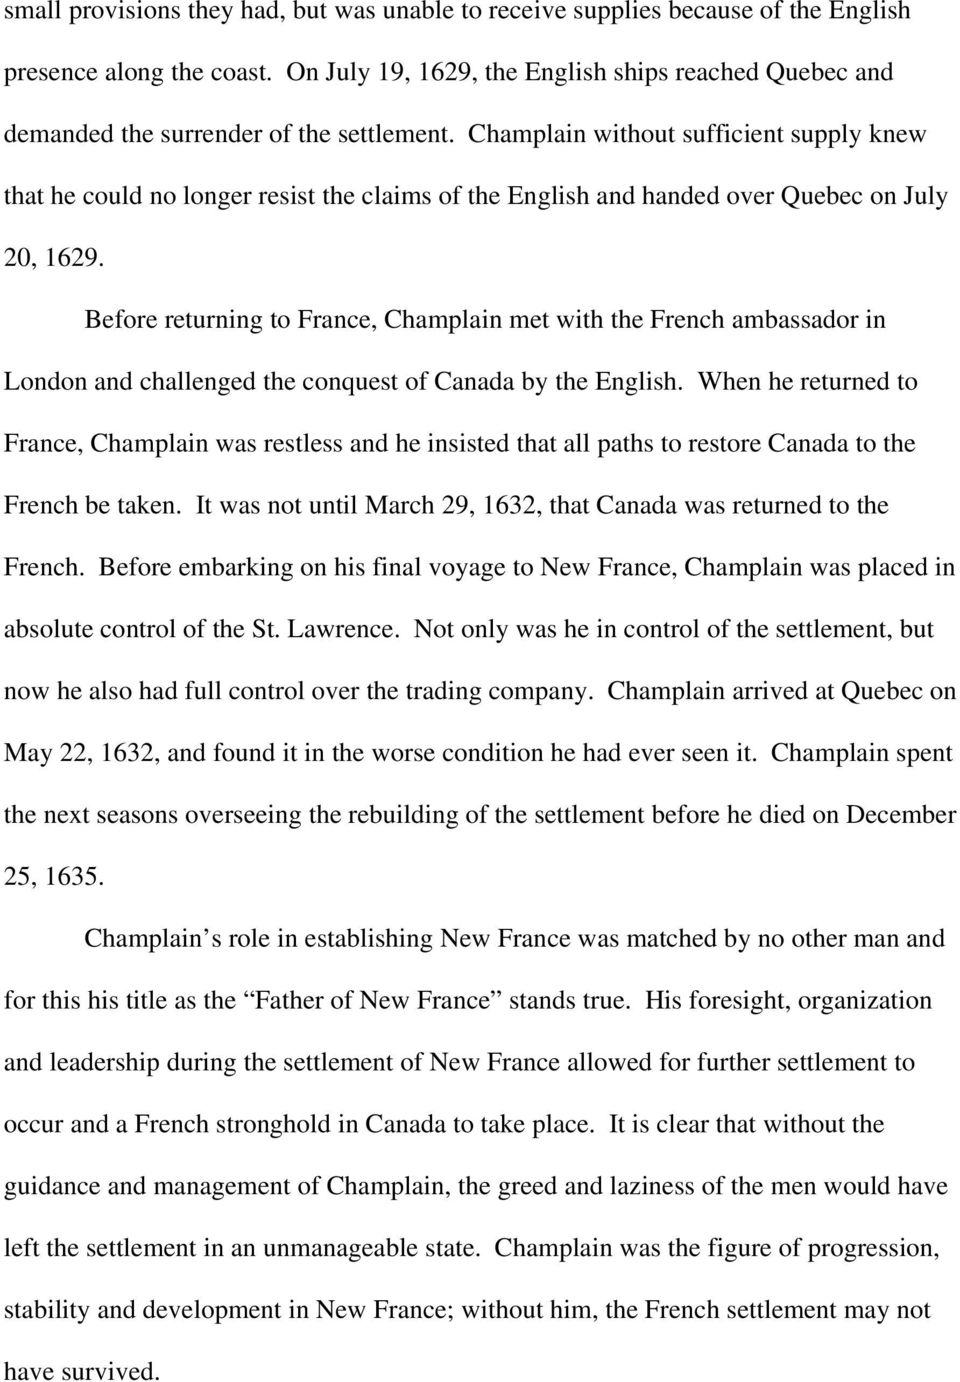 Champlain without sufficient supply knew that he could no longer resist the claims of the English and handed over Quebec on July 20, 1629.